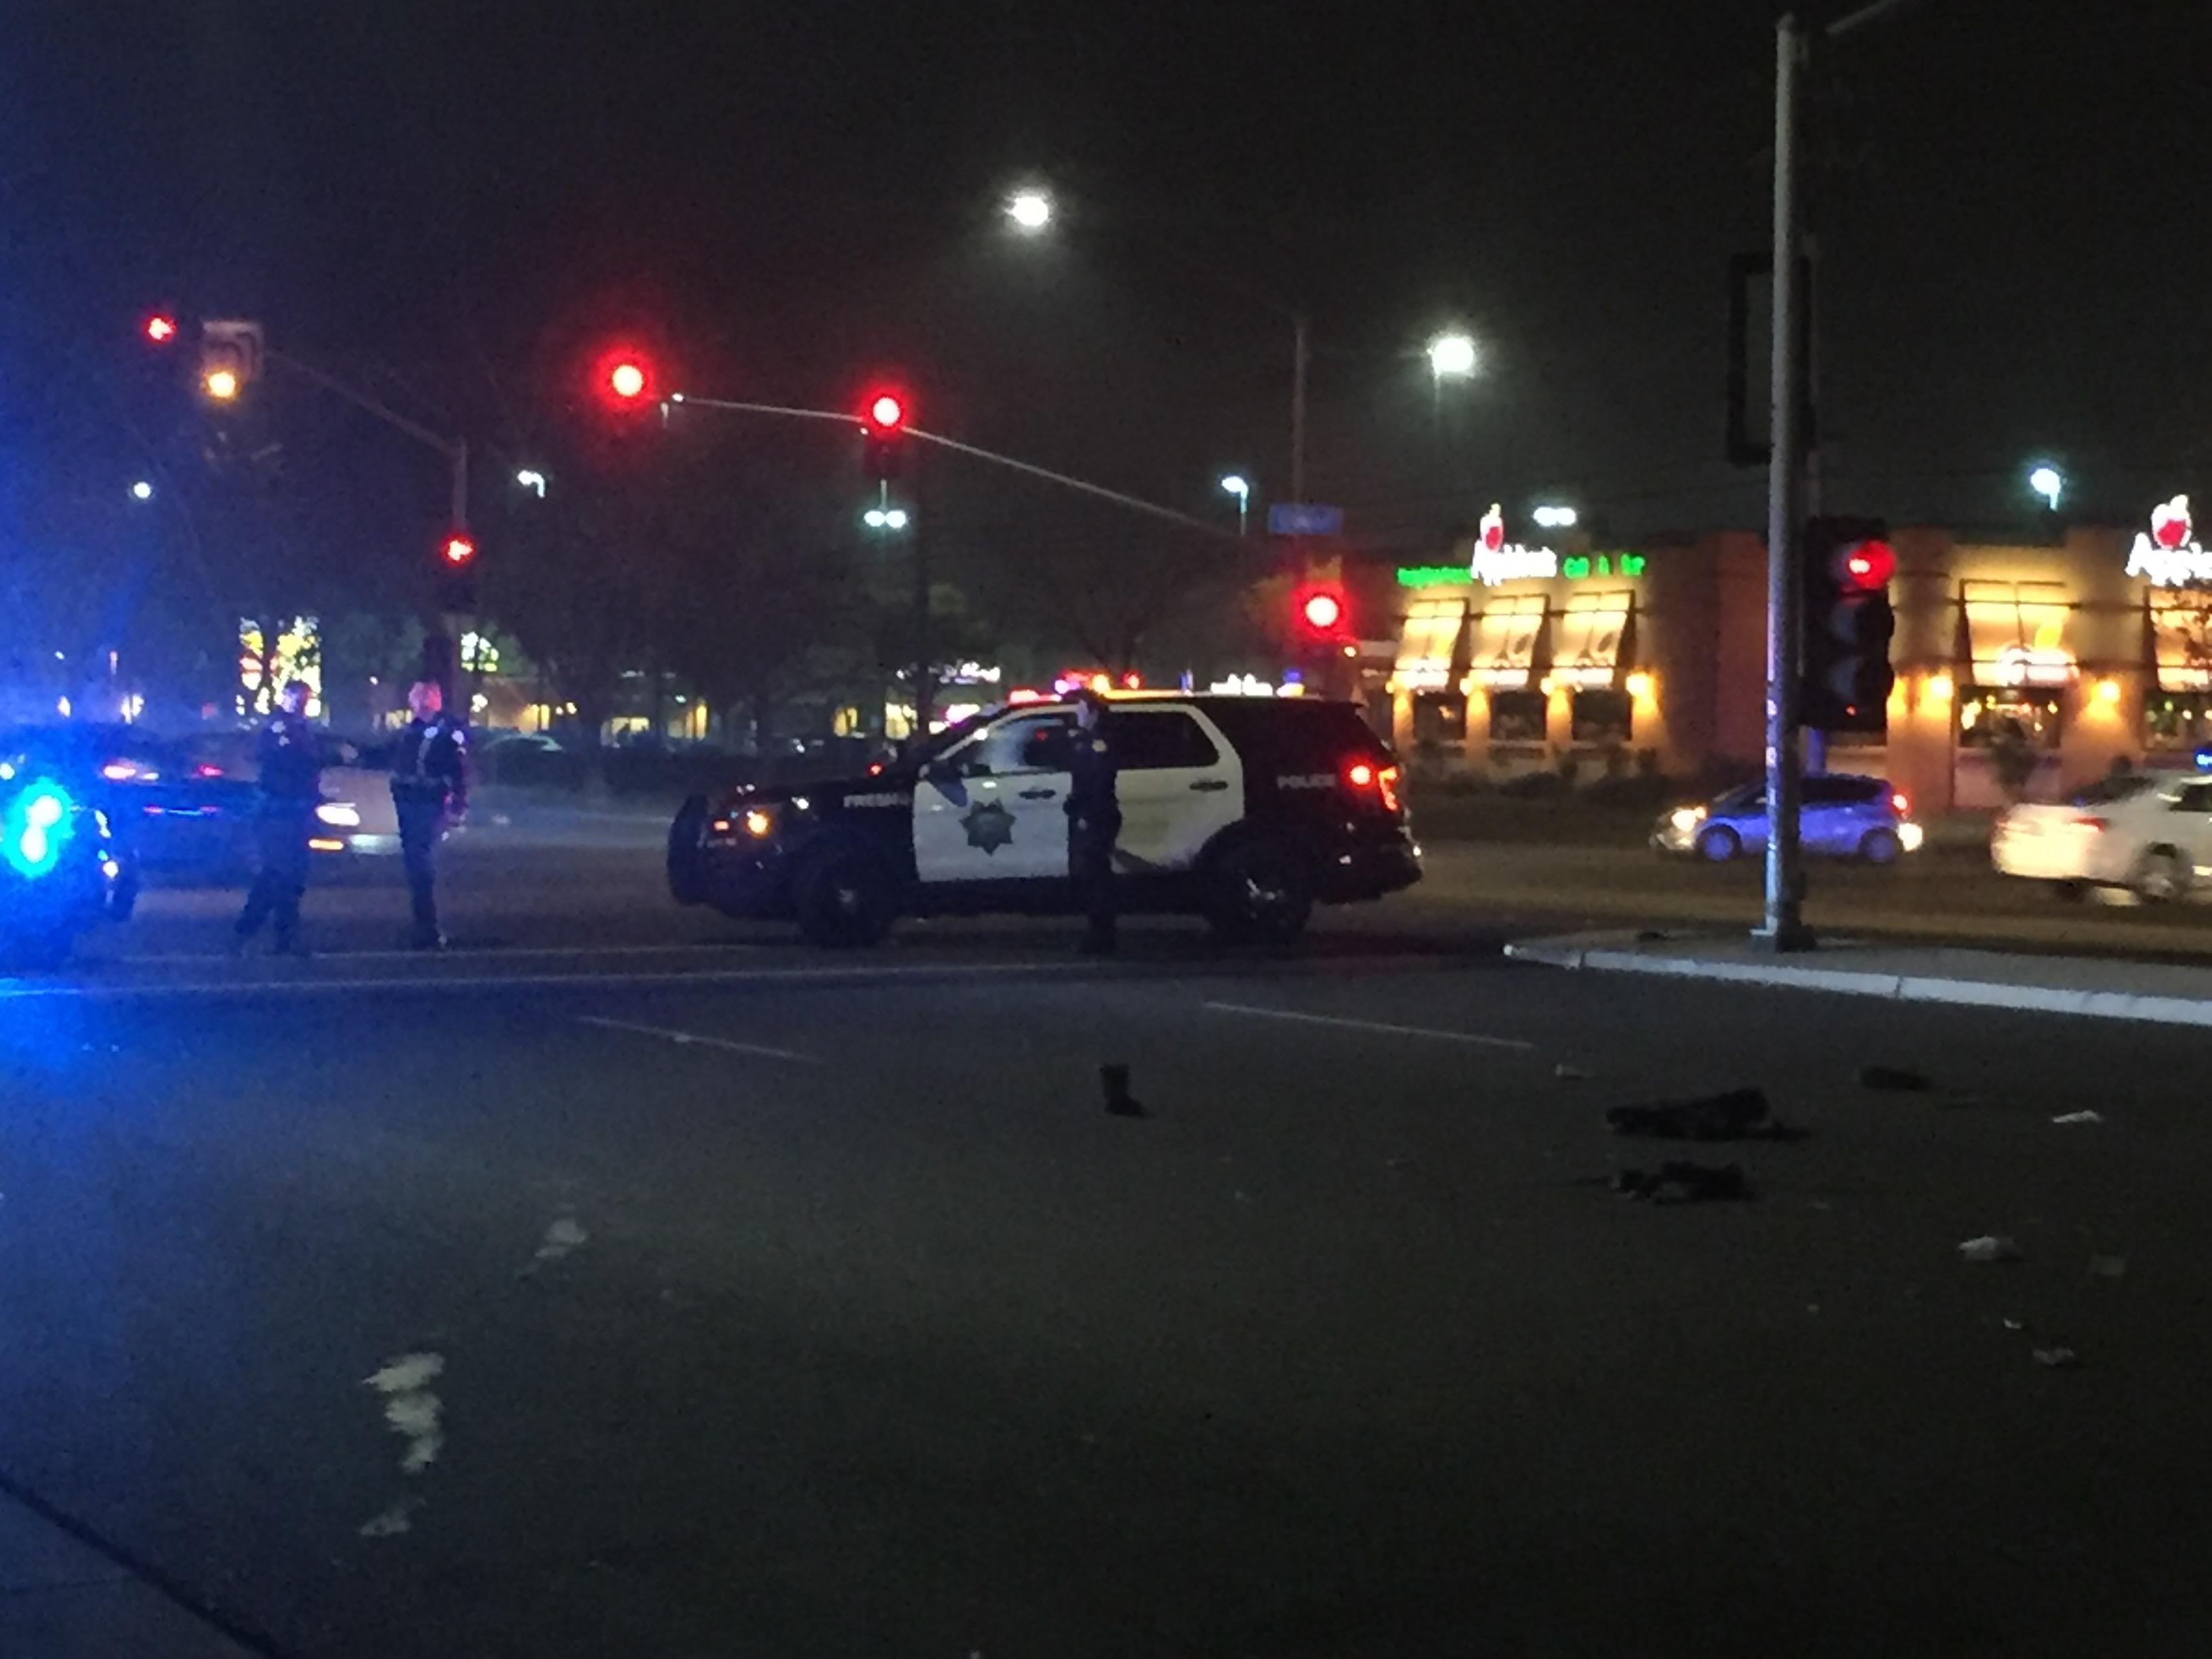 Fresno P.D. is investigating an auto-pedestrian crash in Northeast Fresno. It happened just before 8:00 p.m. Friday near the intersection of Cedar and Herndon